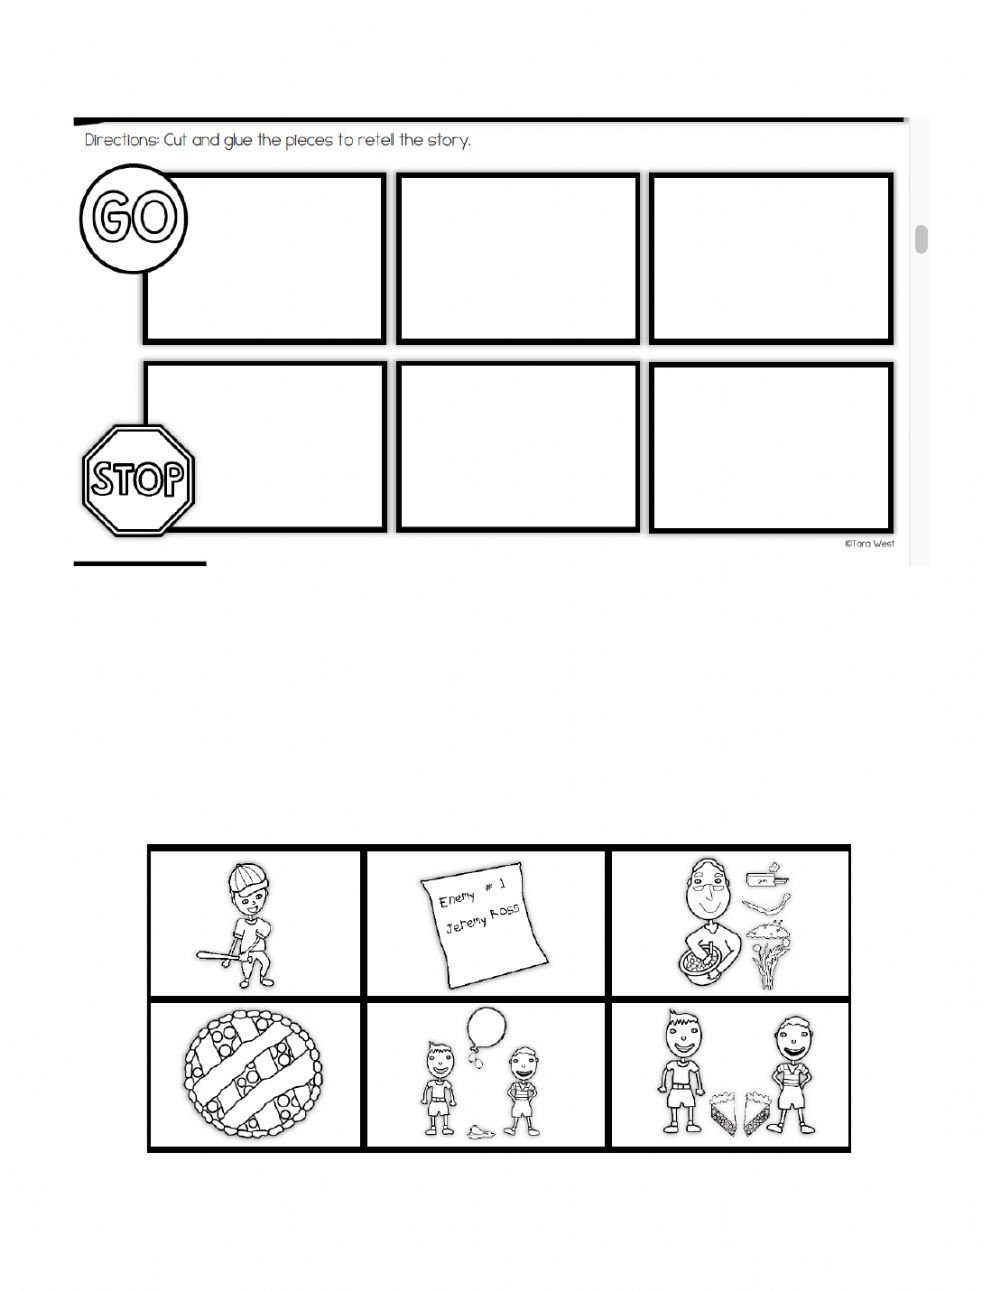 Sequence Pictures Worksheets Enemy Pie Sequence 2 by Tara West Interactive Worksheet